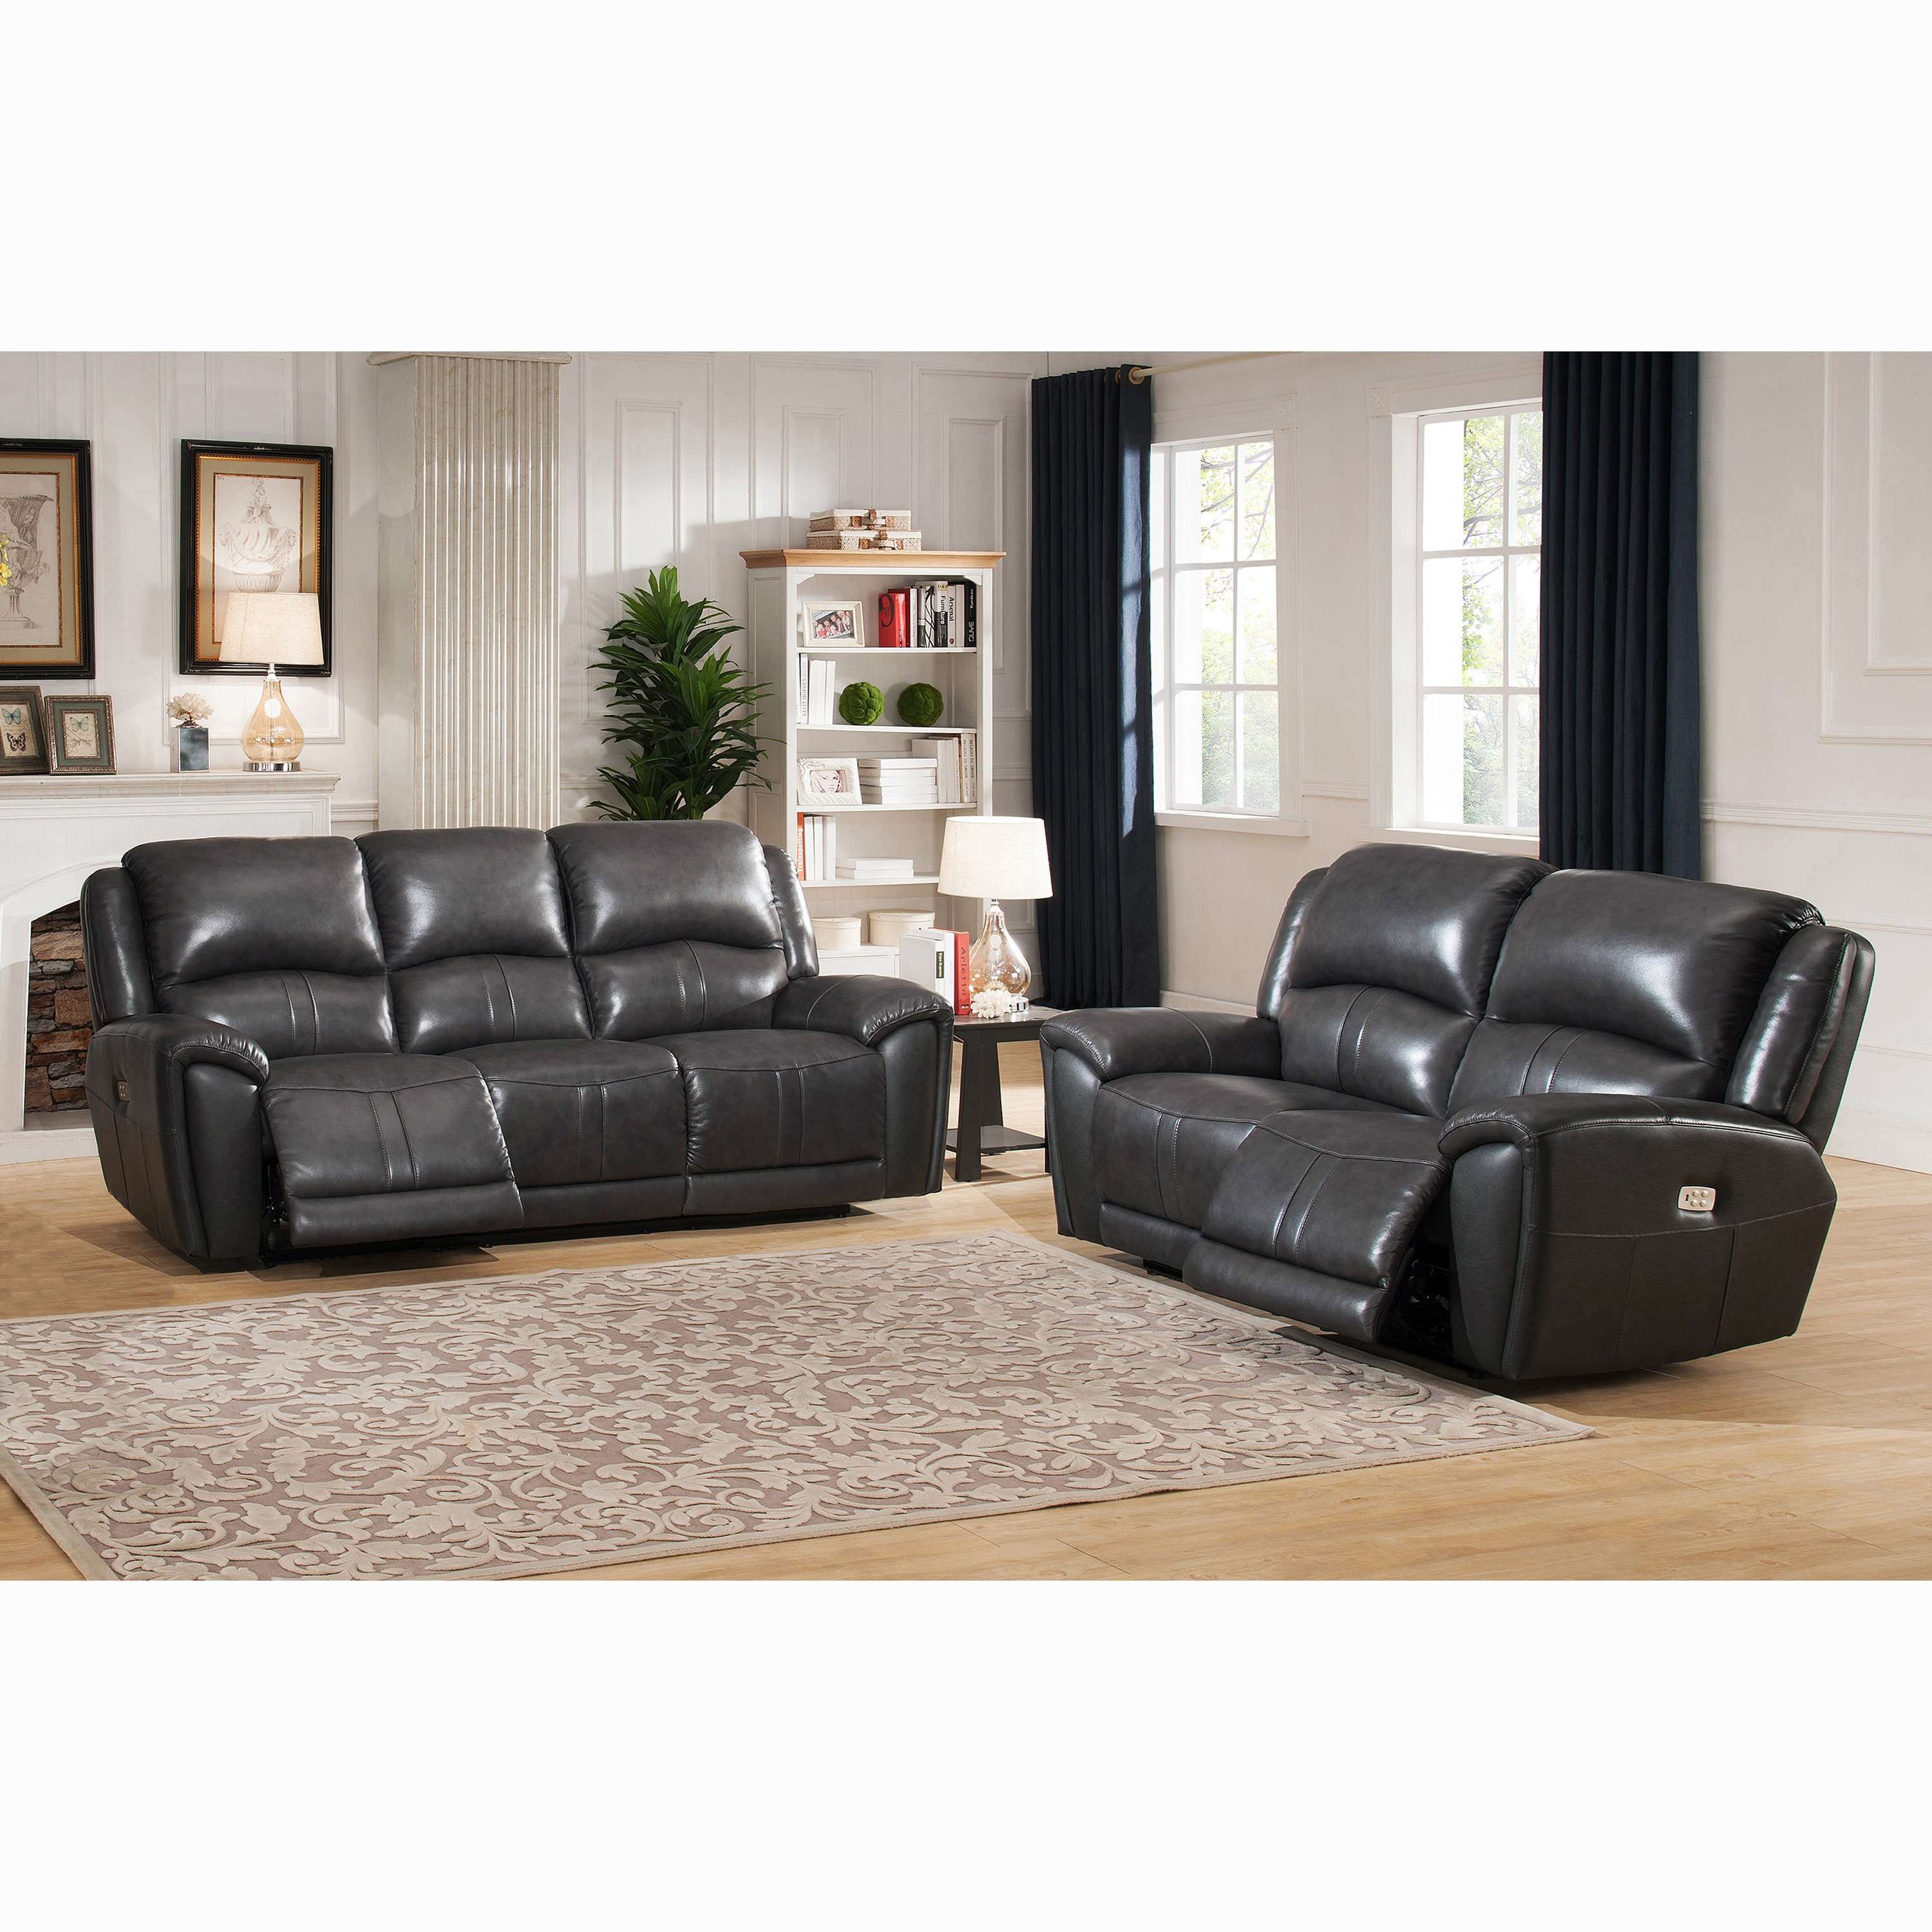 Shop Ari Grey Top Grain Leather Power Reclining Sofa and Loveseat ...